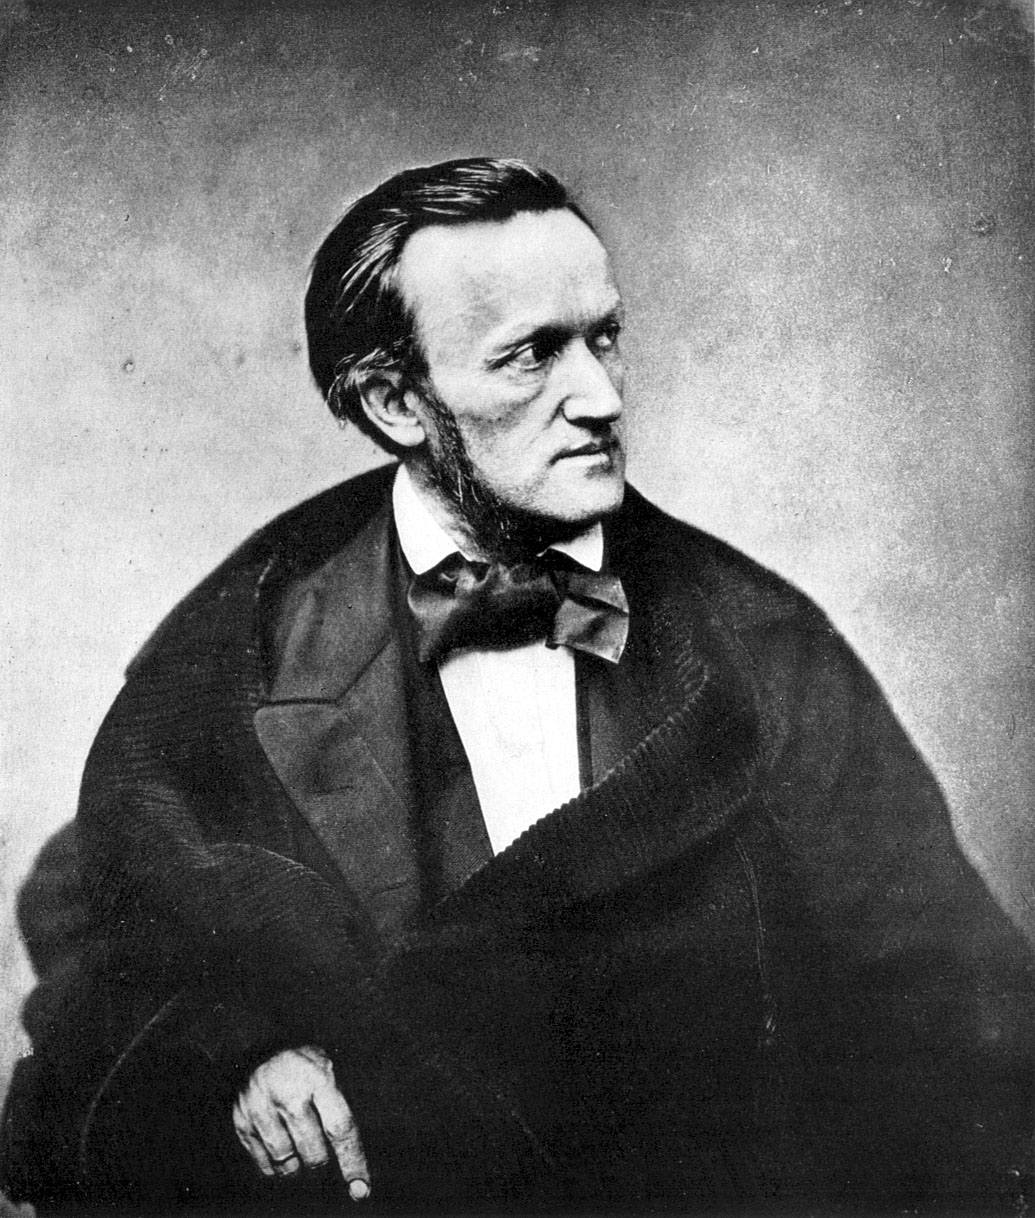 a biography of wilhelm richard wagner Biography of: wilhelm richard wagner by: marilynn minor introduction: wilhelm richard wagner was a german composer and theorist, whose operas and music had a great influence on the course of western.